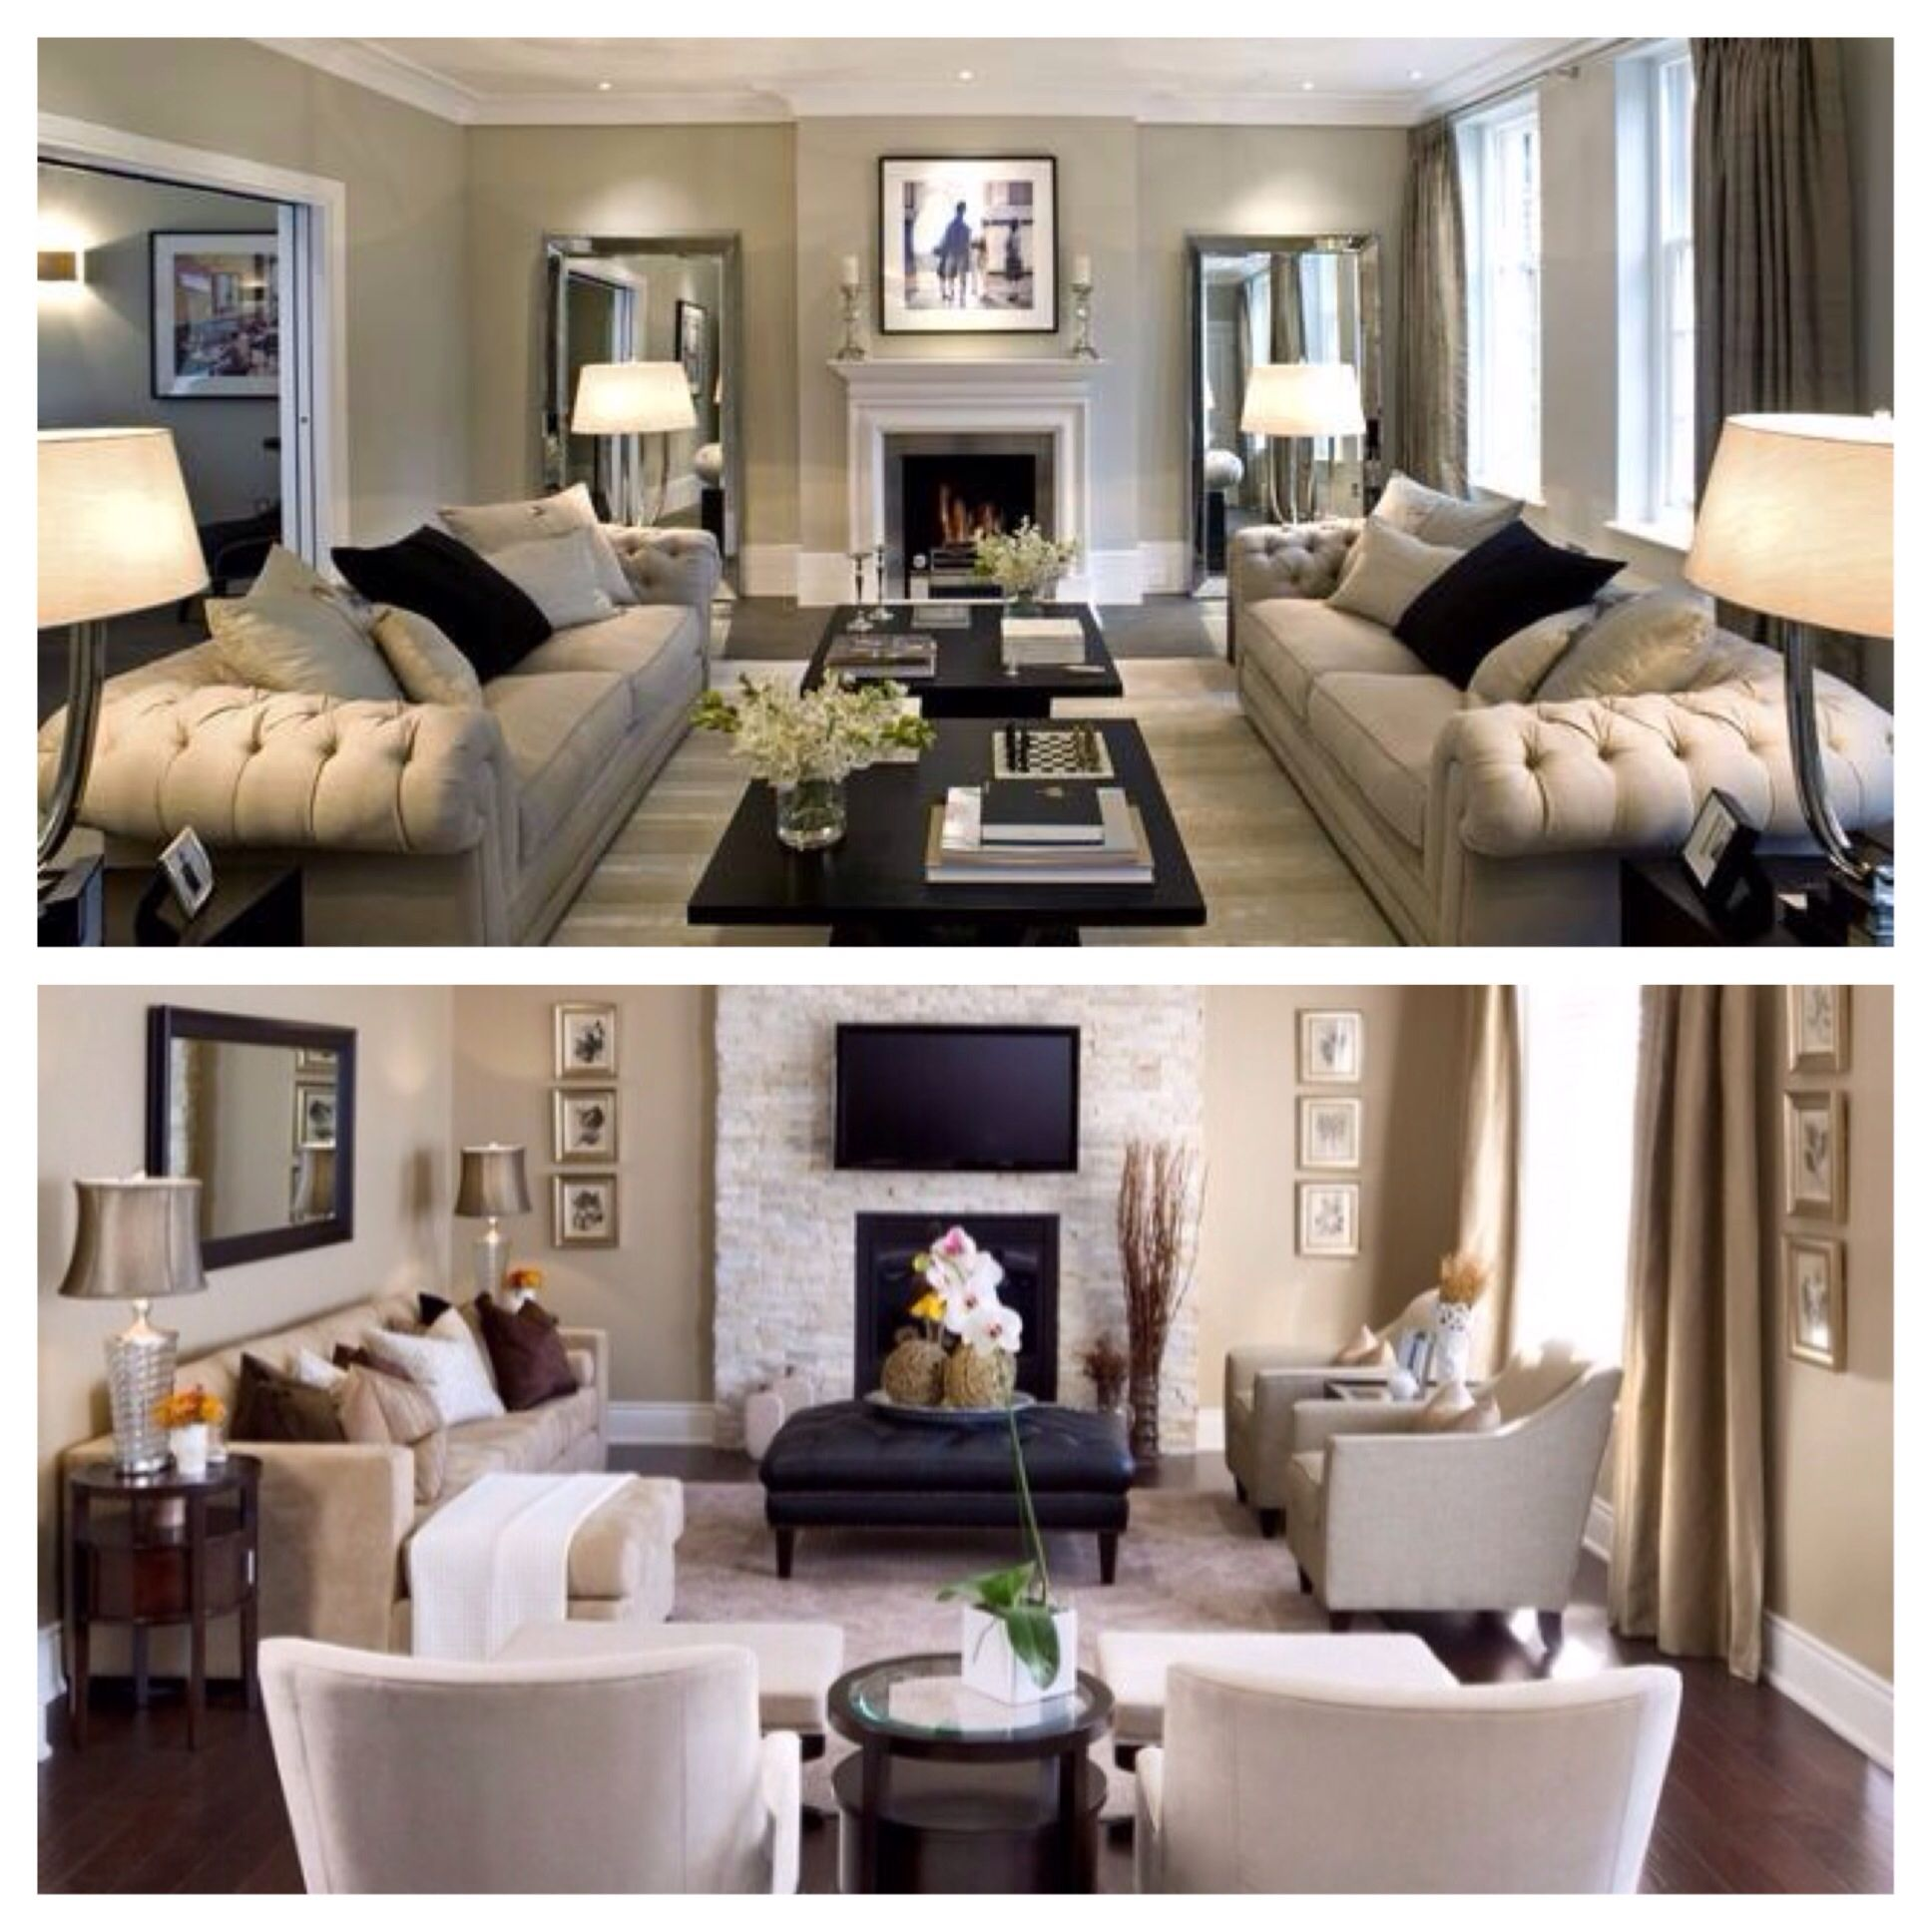 Two styles I'm combining for my future living room look